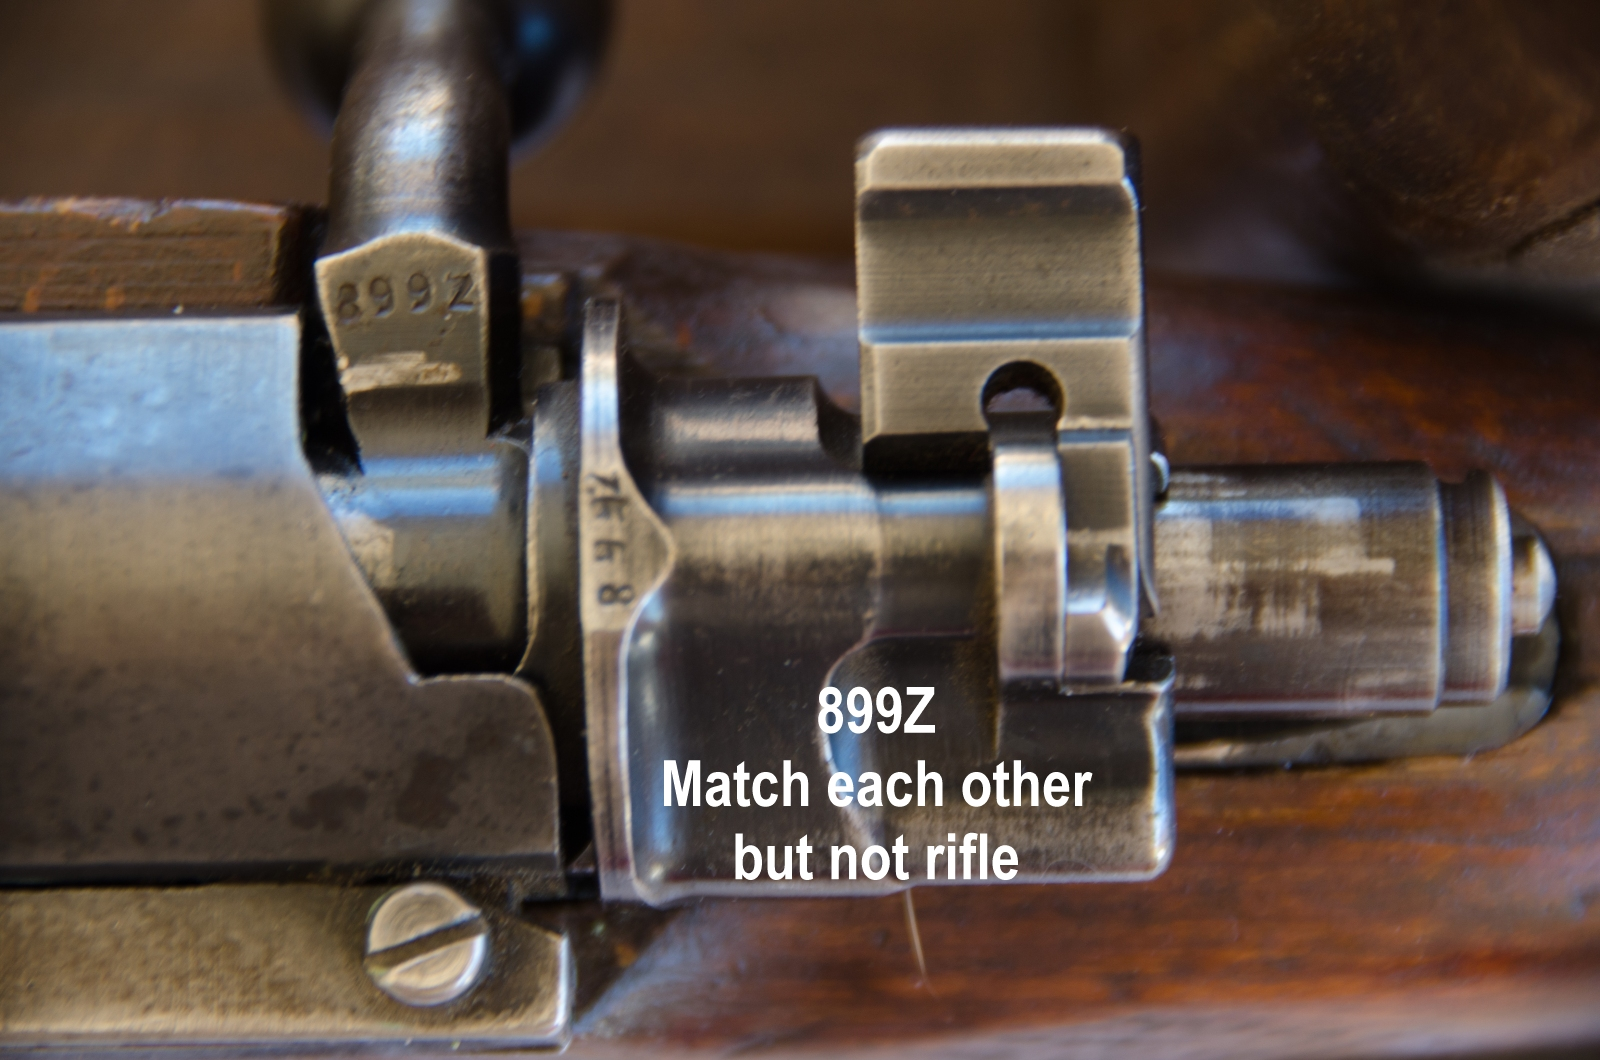 non-matching bolt, but parts match each other